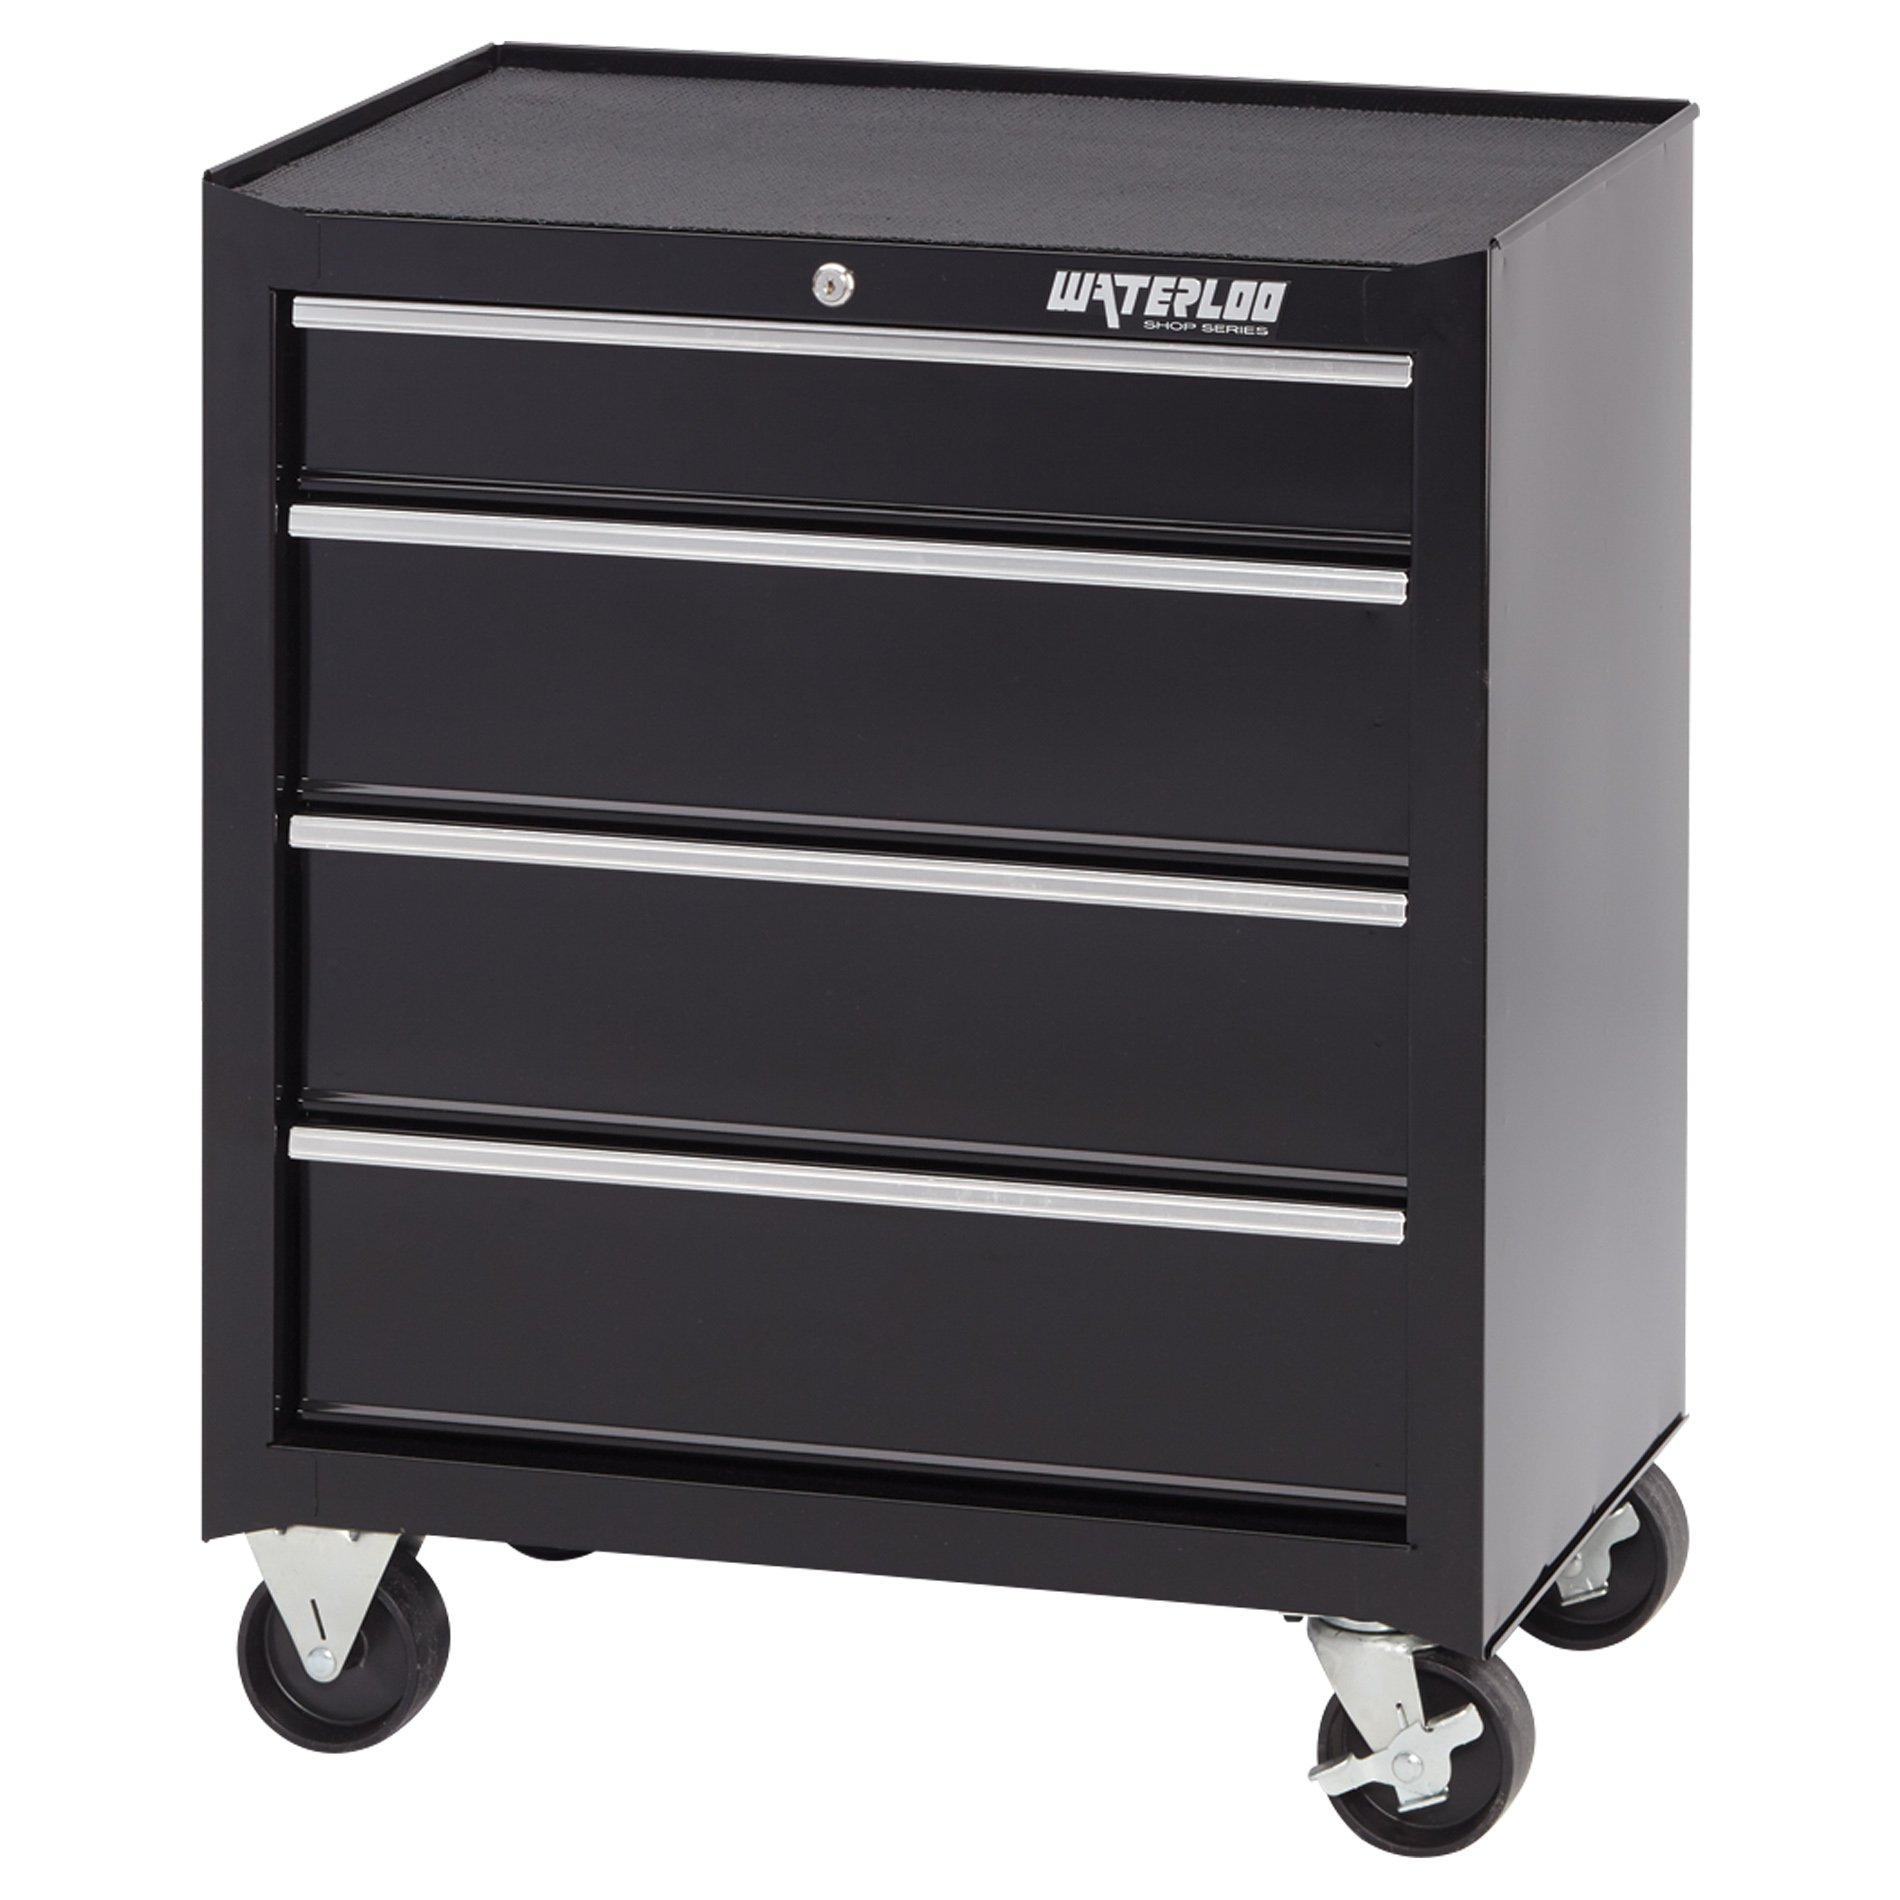 Waterloo 4-Drawer Ball-Bearing Tool Cabinet, 26'' W - Designed, Engineered and Assembled in the USA by Waterloo